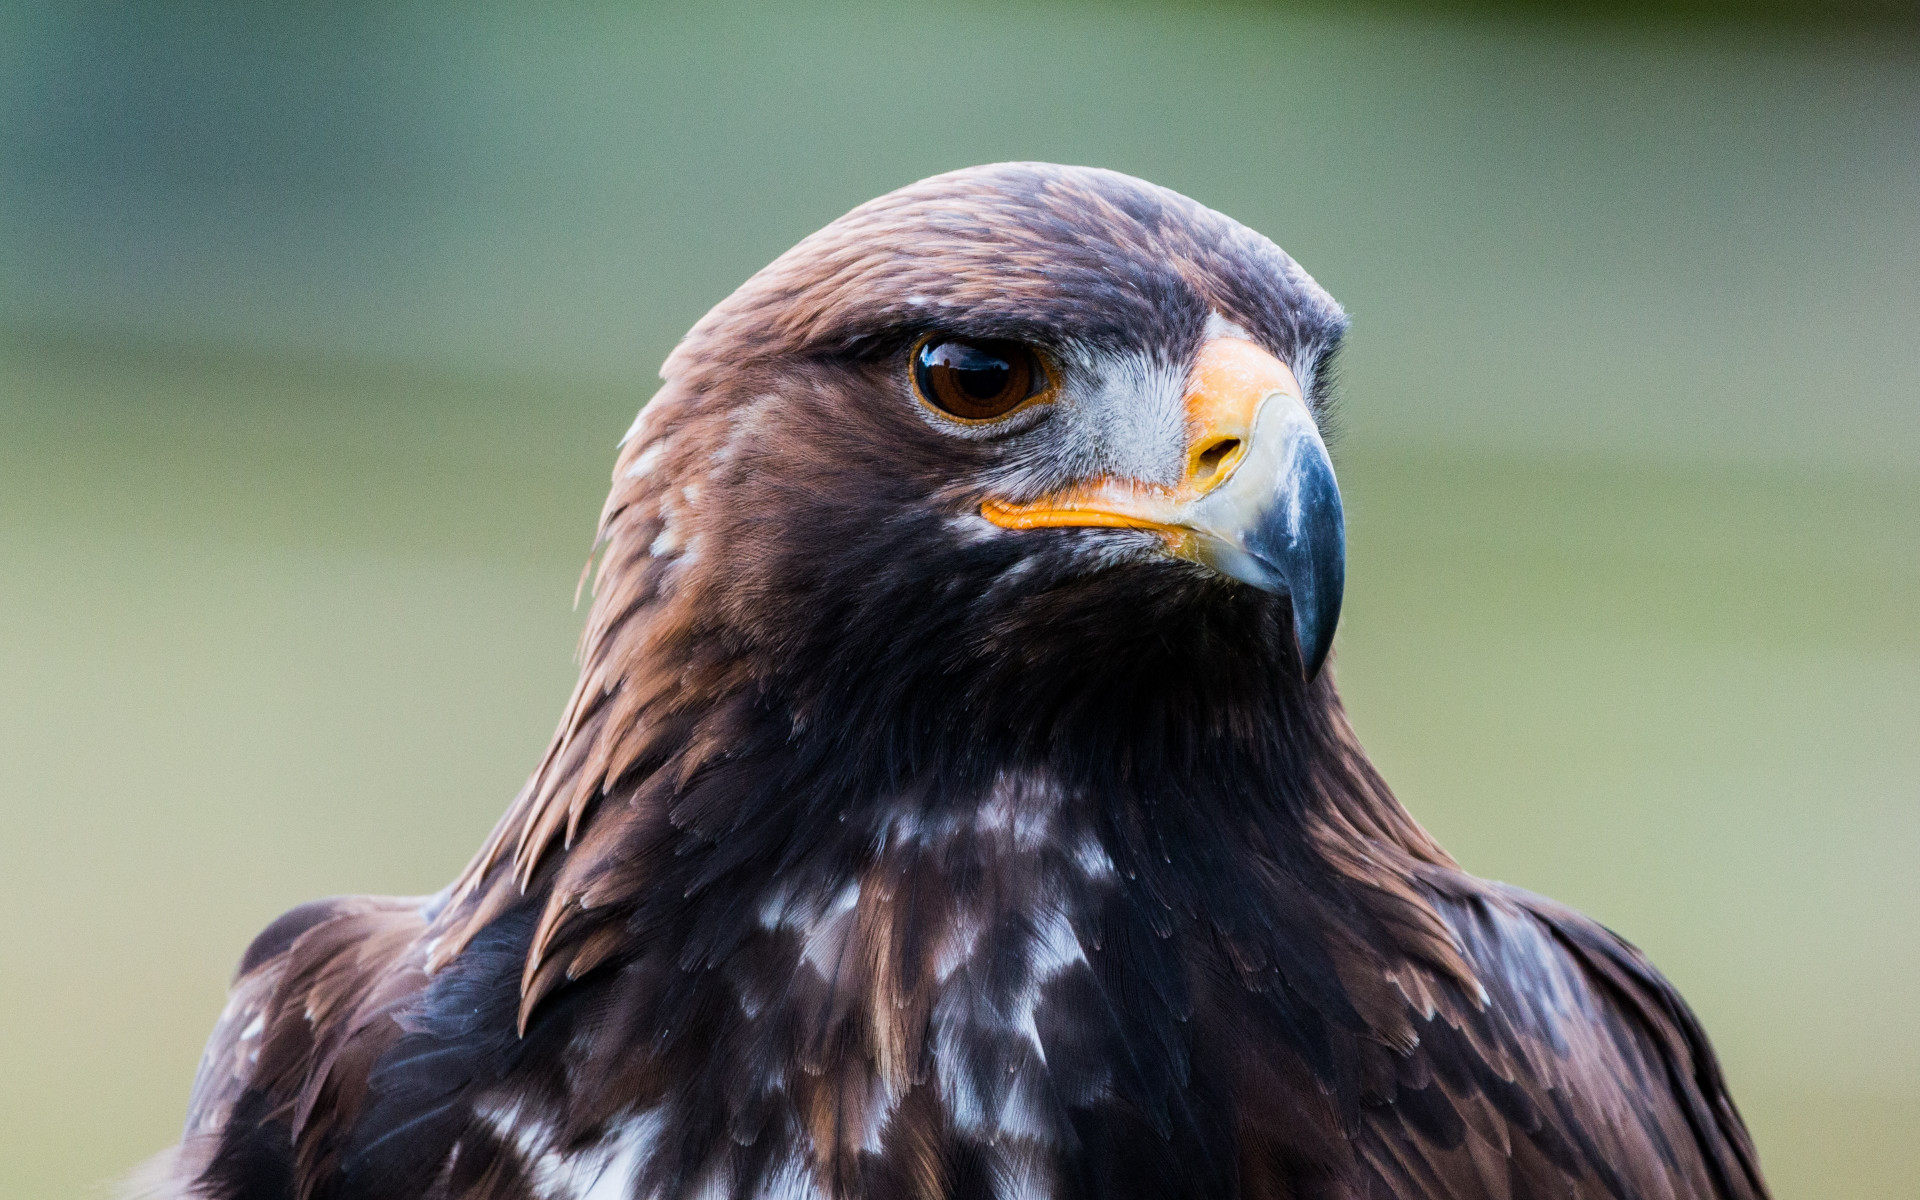 Golden eagle portrait wallpaper 1920x1200